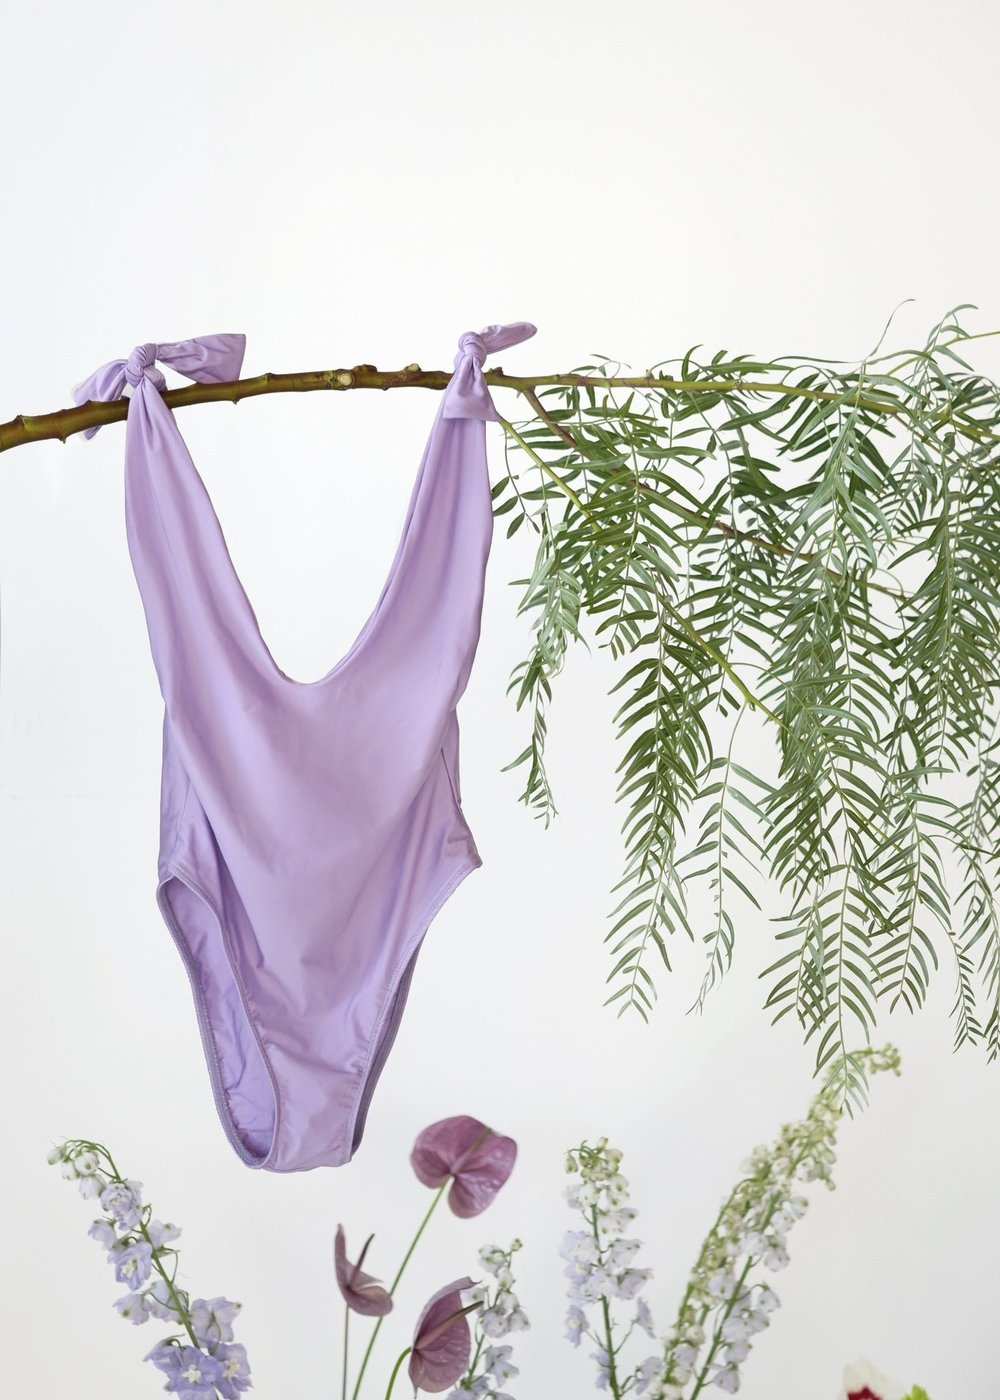 A fun summer suit - I've been obsessed with the Sidway Anderson one piece for a while now, and this lavender color has me swooning this season. Made in small batches in DTLA